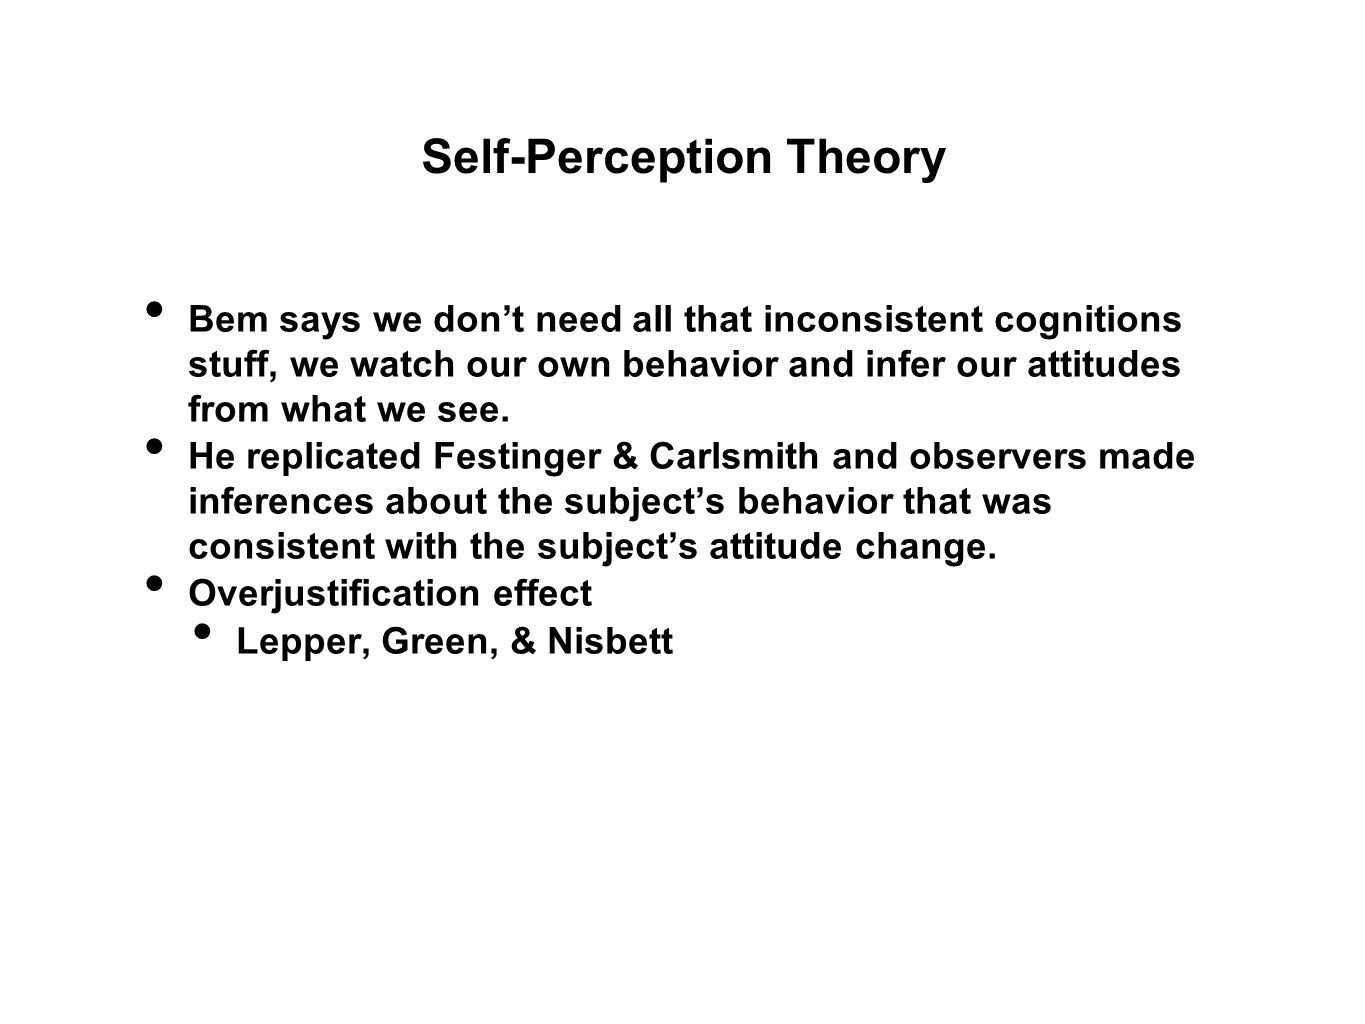 theory of planned behavior cognitive dissonance theory and self perception Which of the following theories assumes that we observe our actions for clues theory of cognitive dissonance & bem's self self-perception & cognitive.